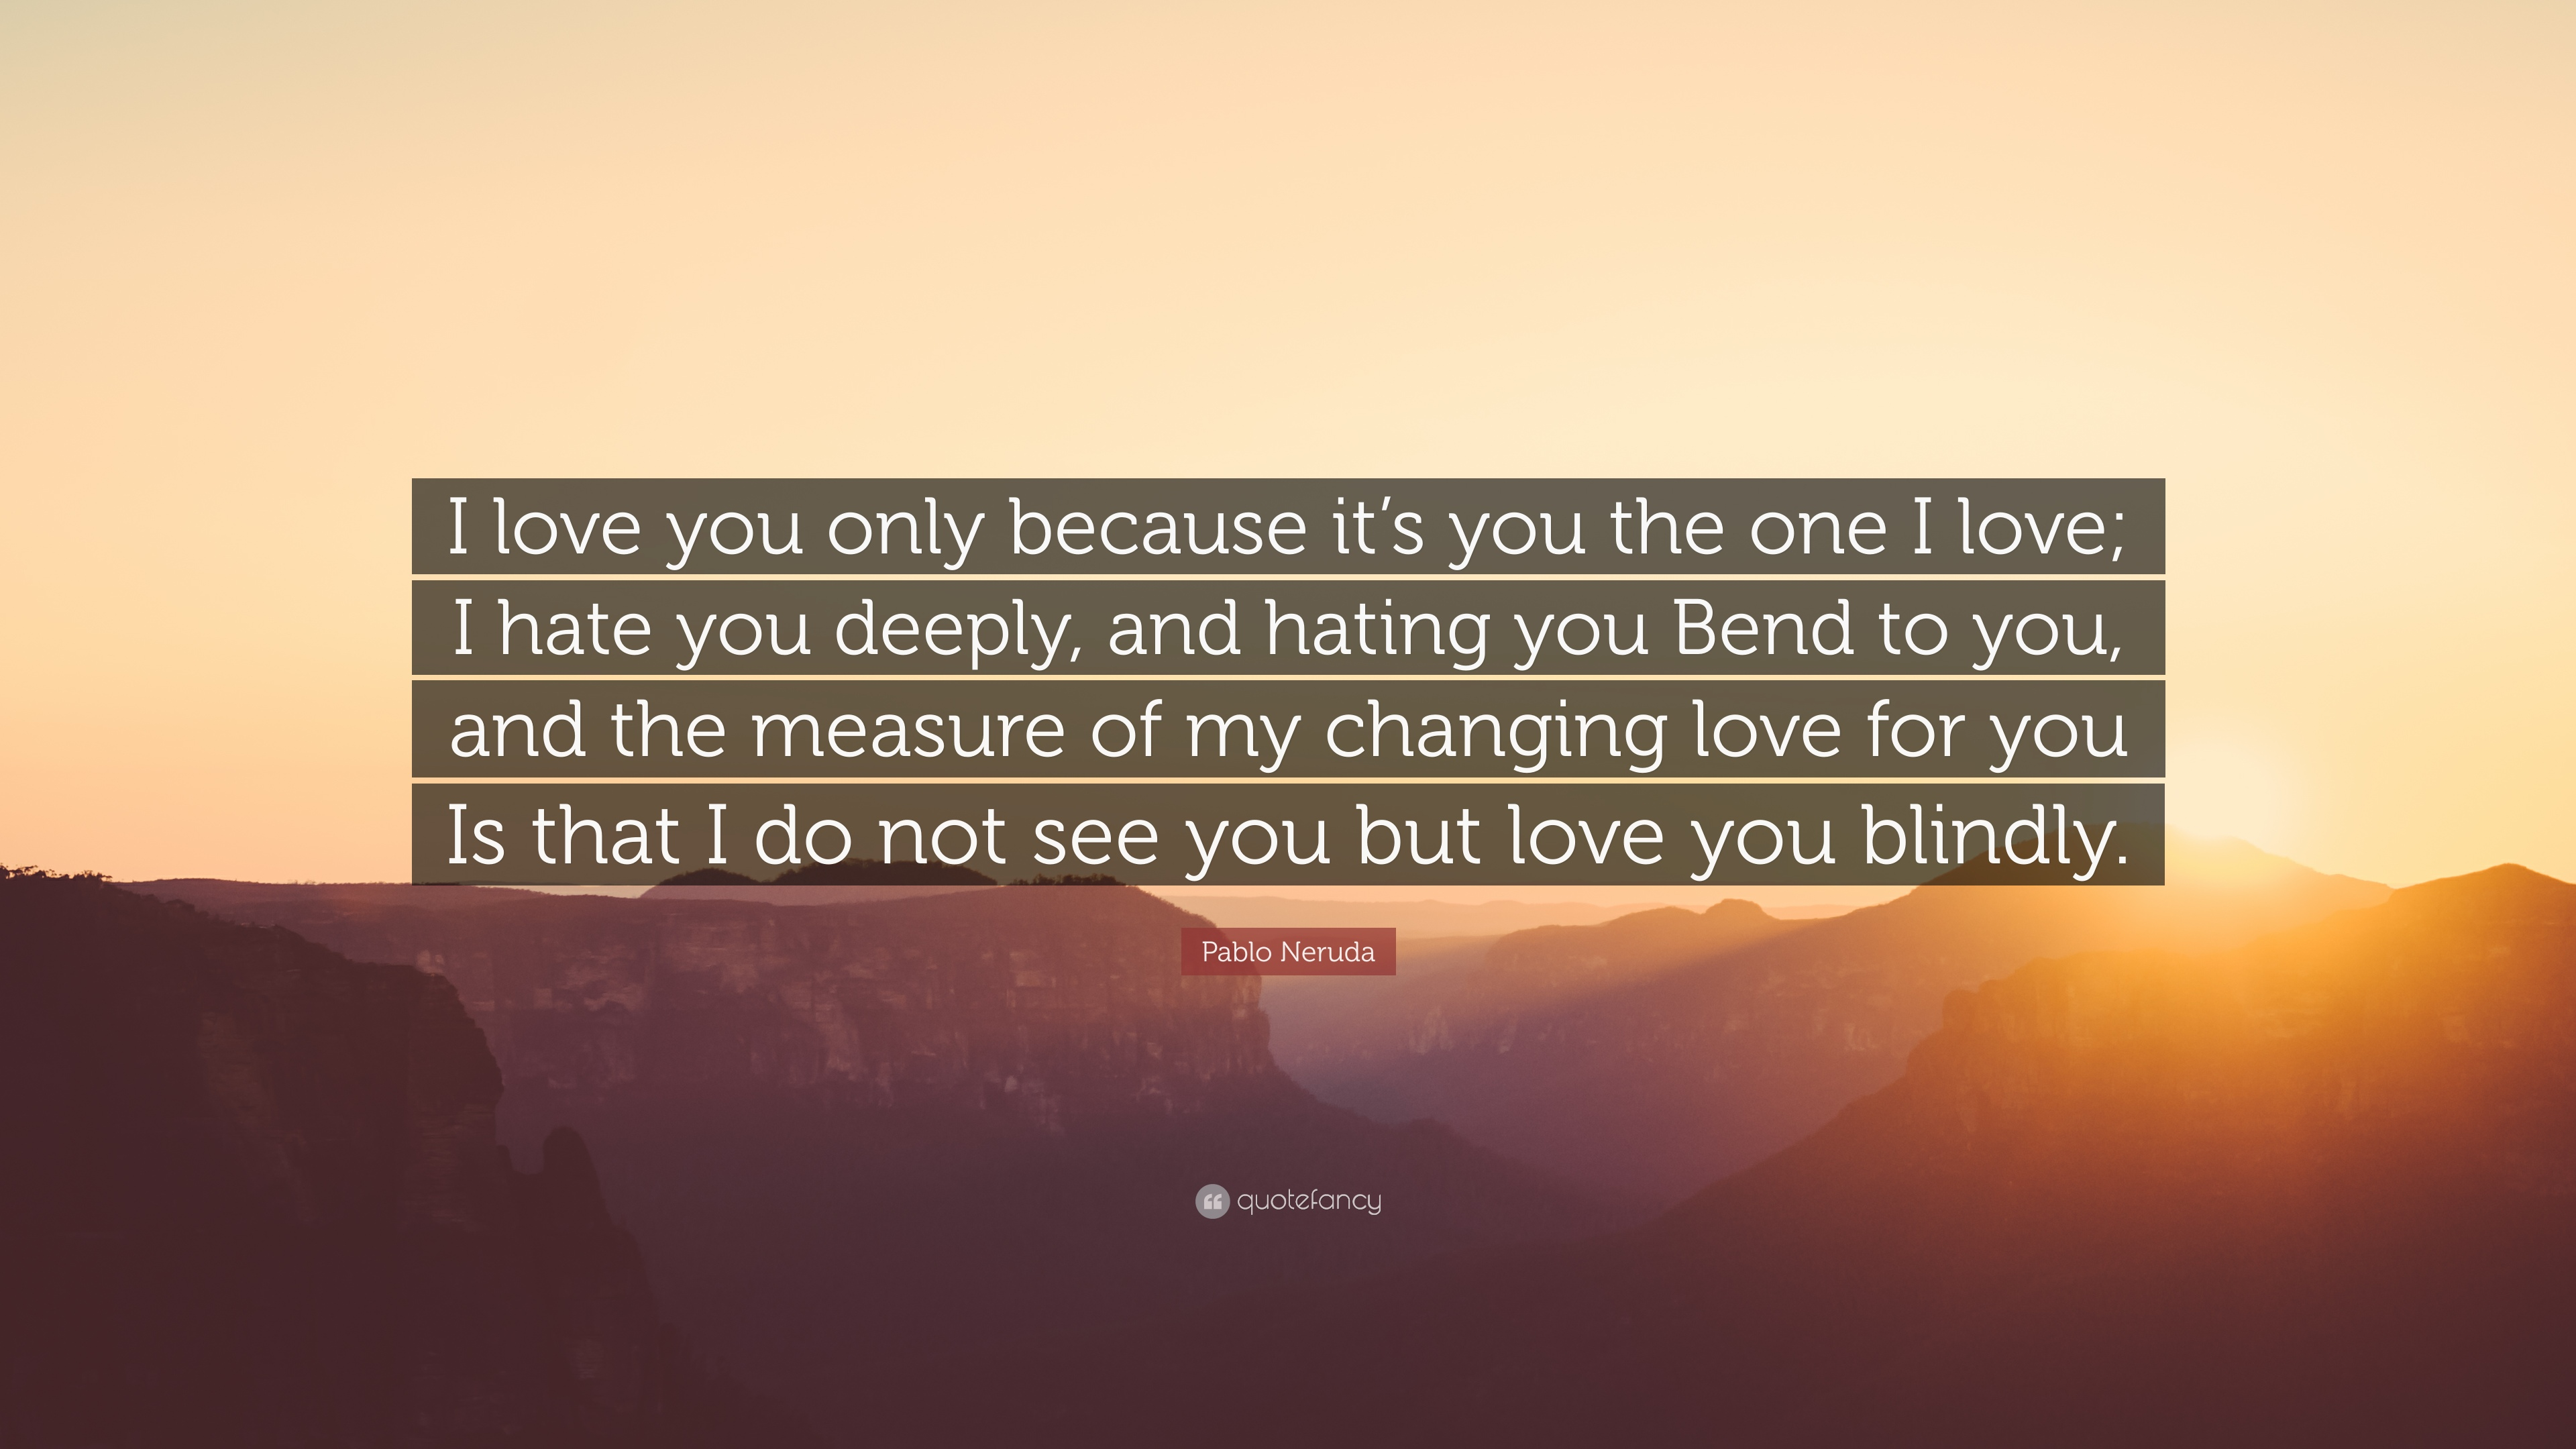 Pablo Neruda Quote I Love You Only Because Its You The One I Love